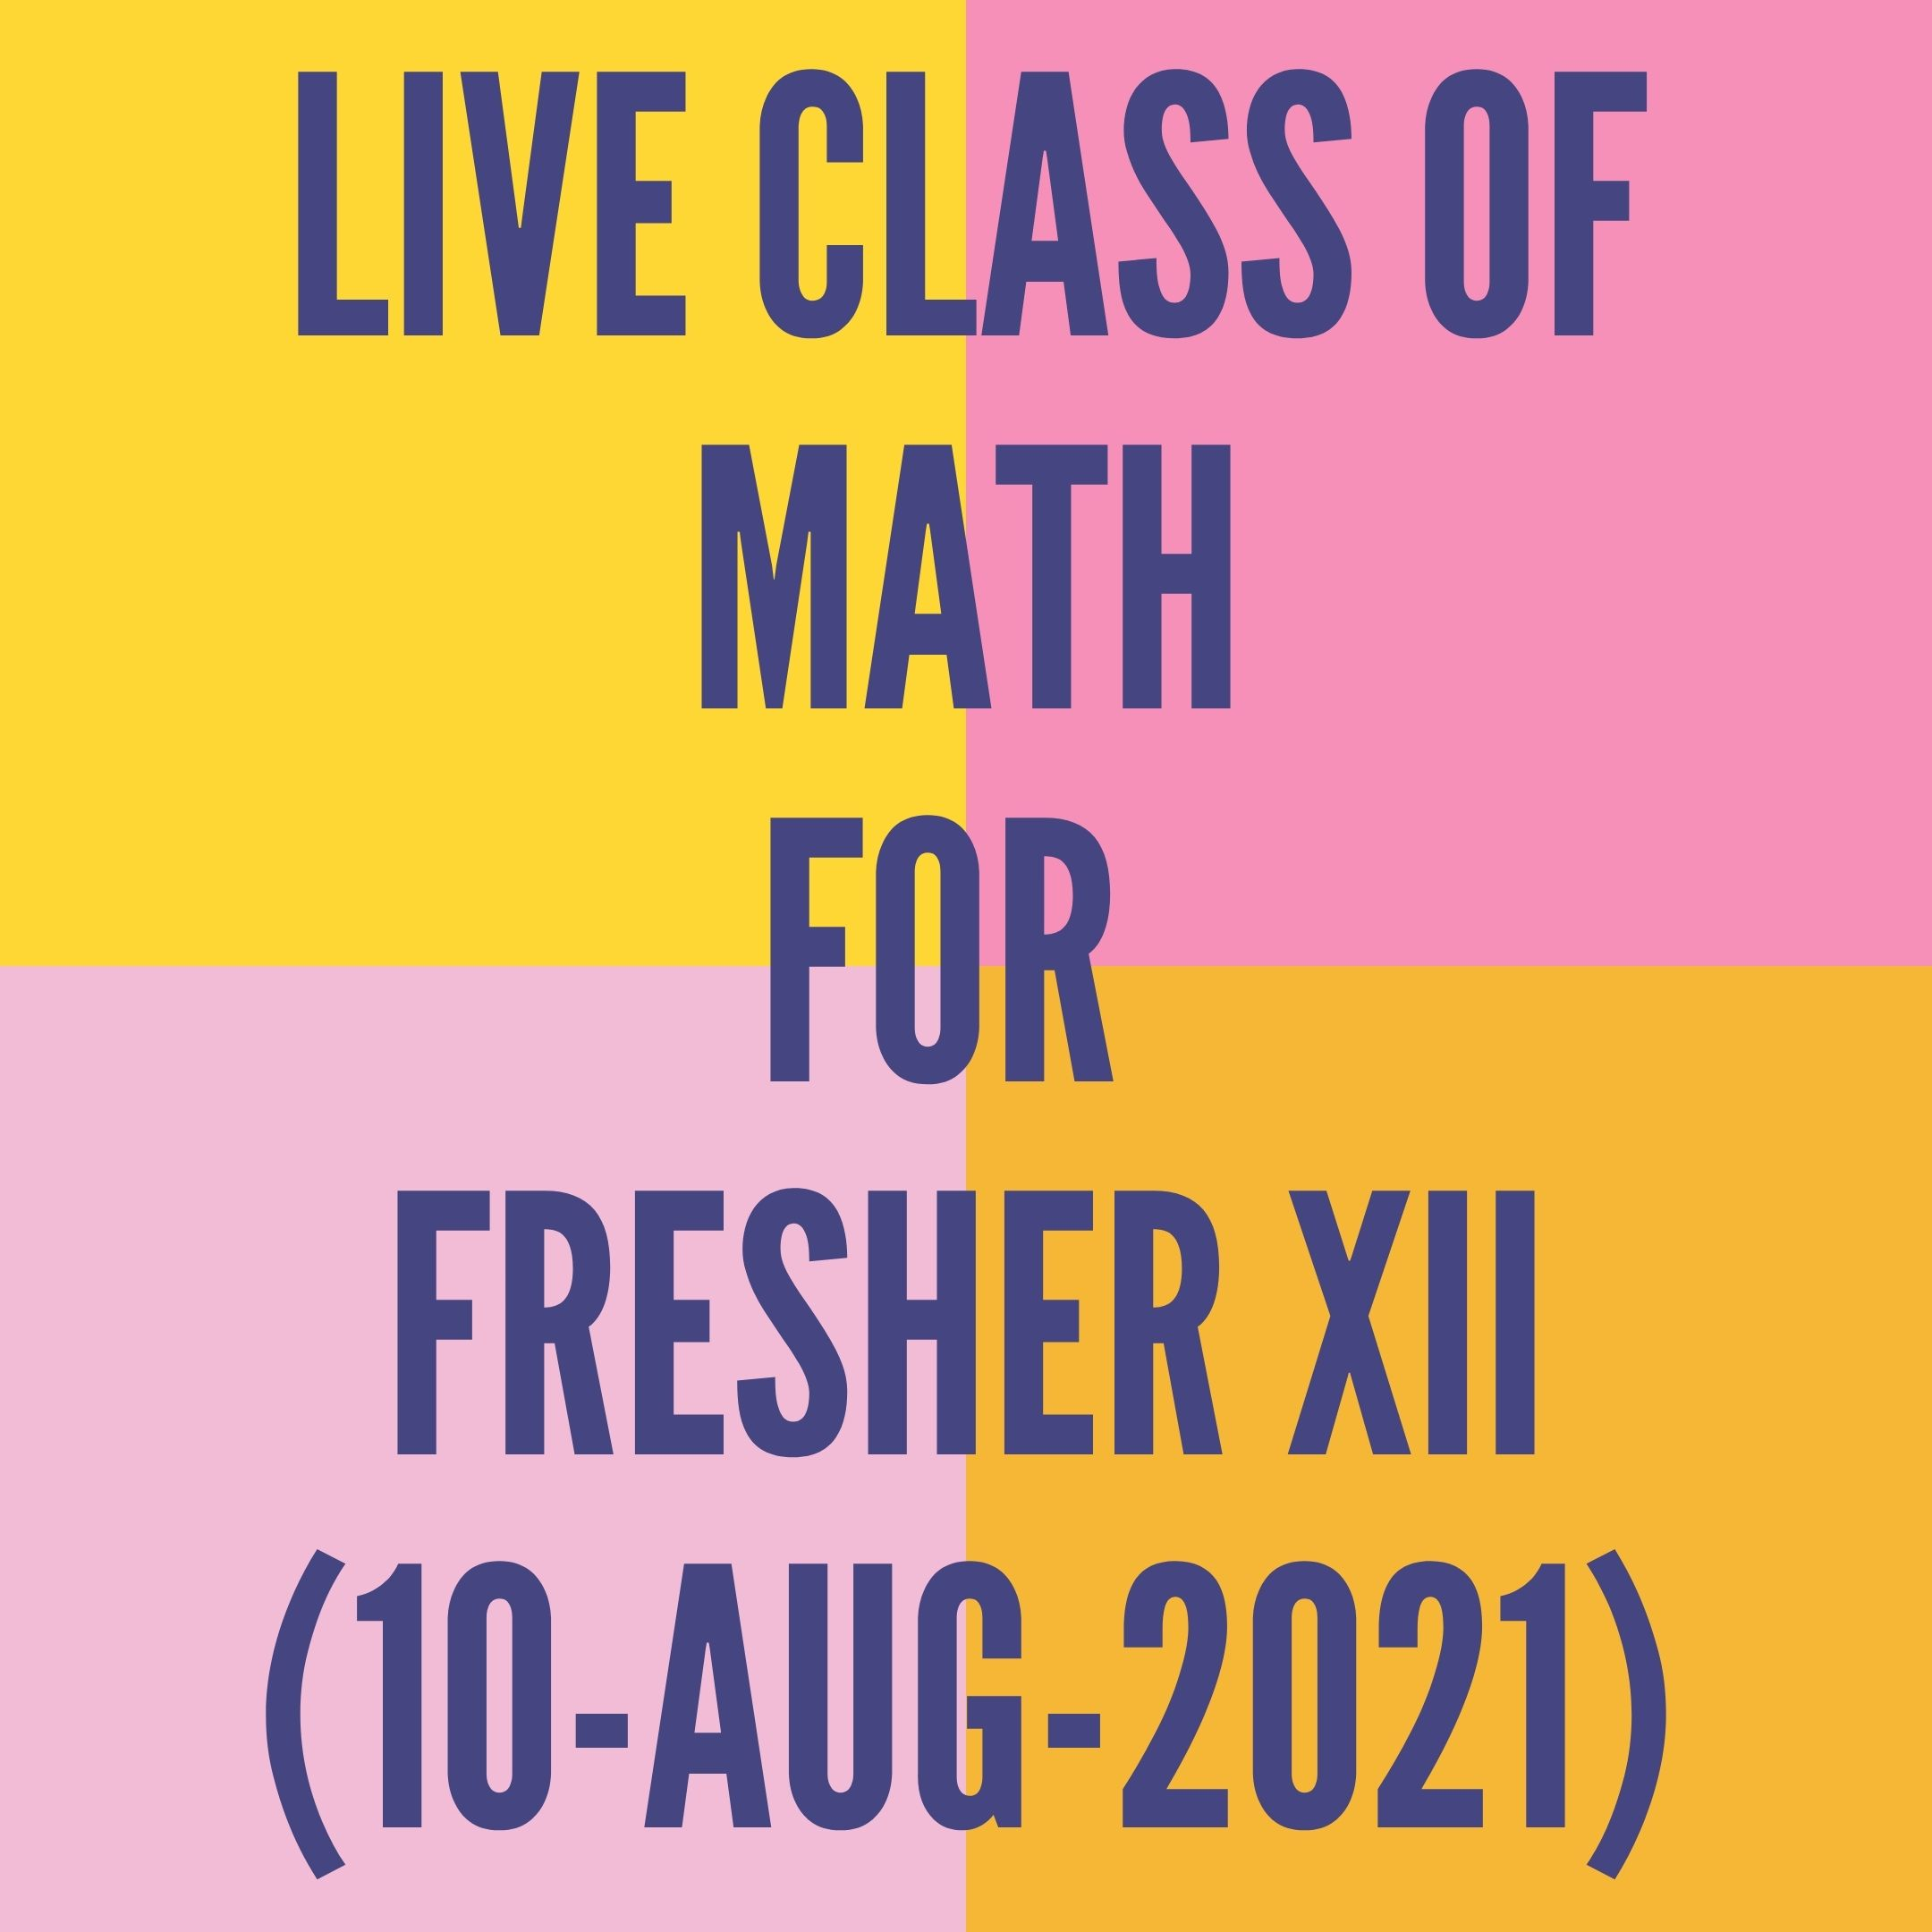 LIVE CLASS OF MATH FOR FRESHER (10-AUG-2021)